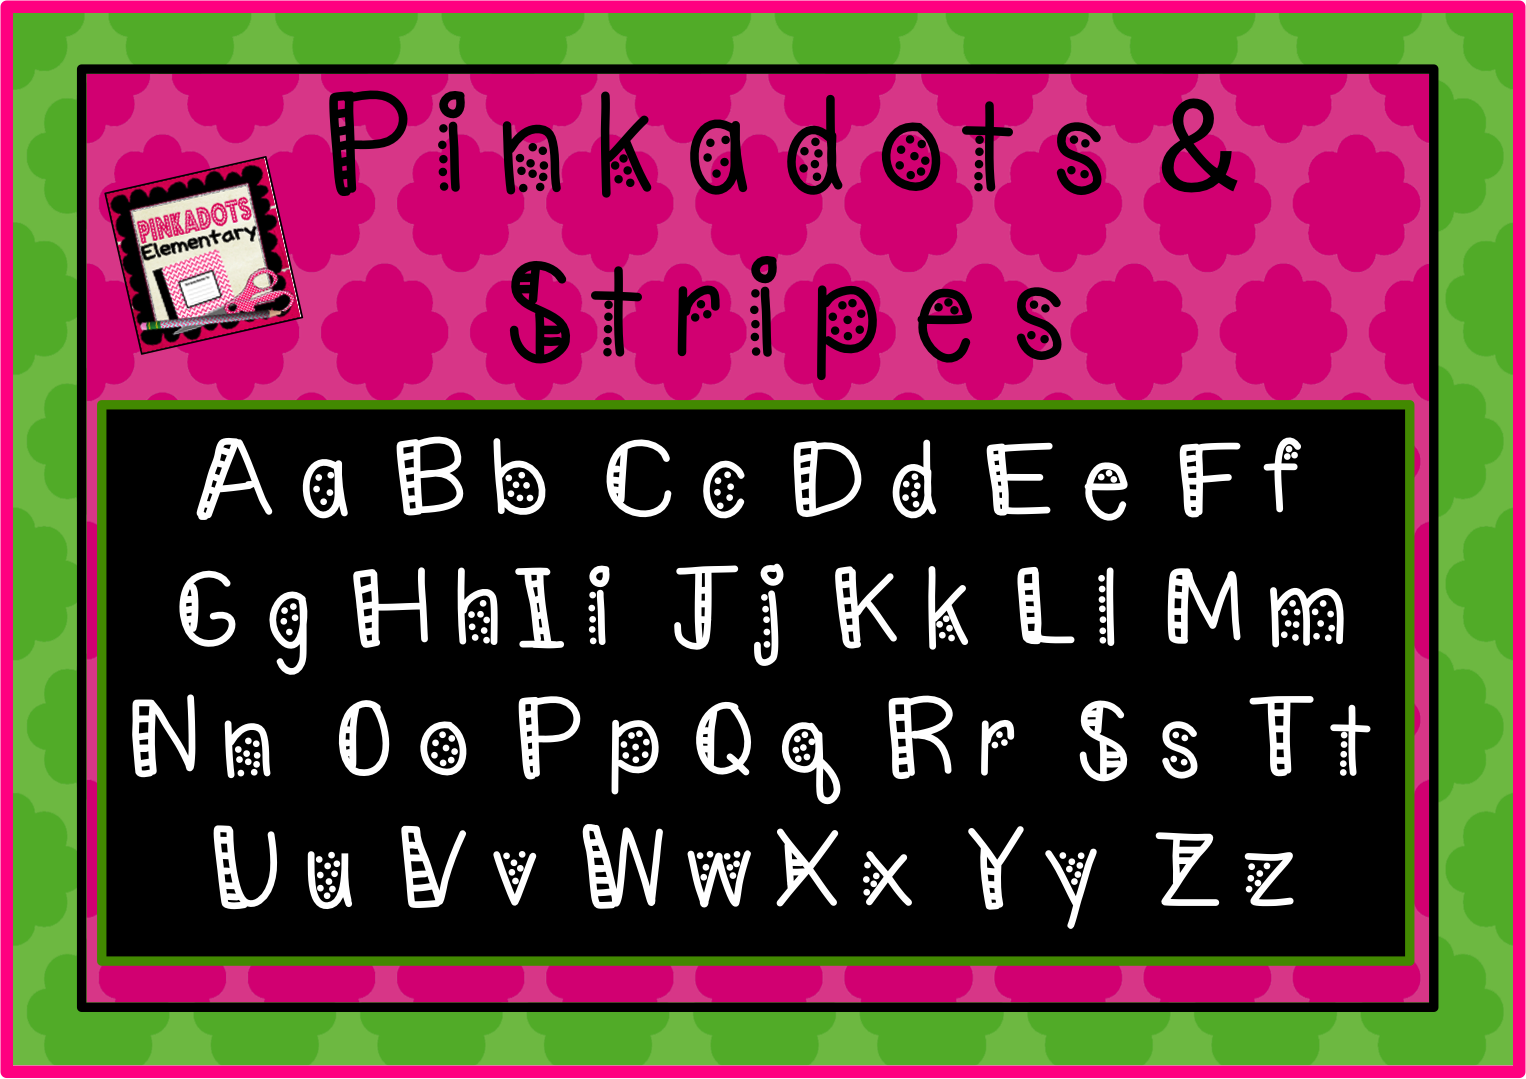 http://www.teacherspayteachers.com/Product/Pinkadots-Stripes-Free-Font-Polkadots-and-Stripes-1304441